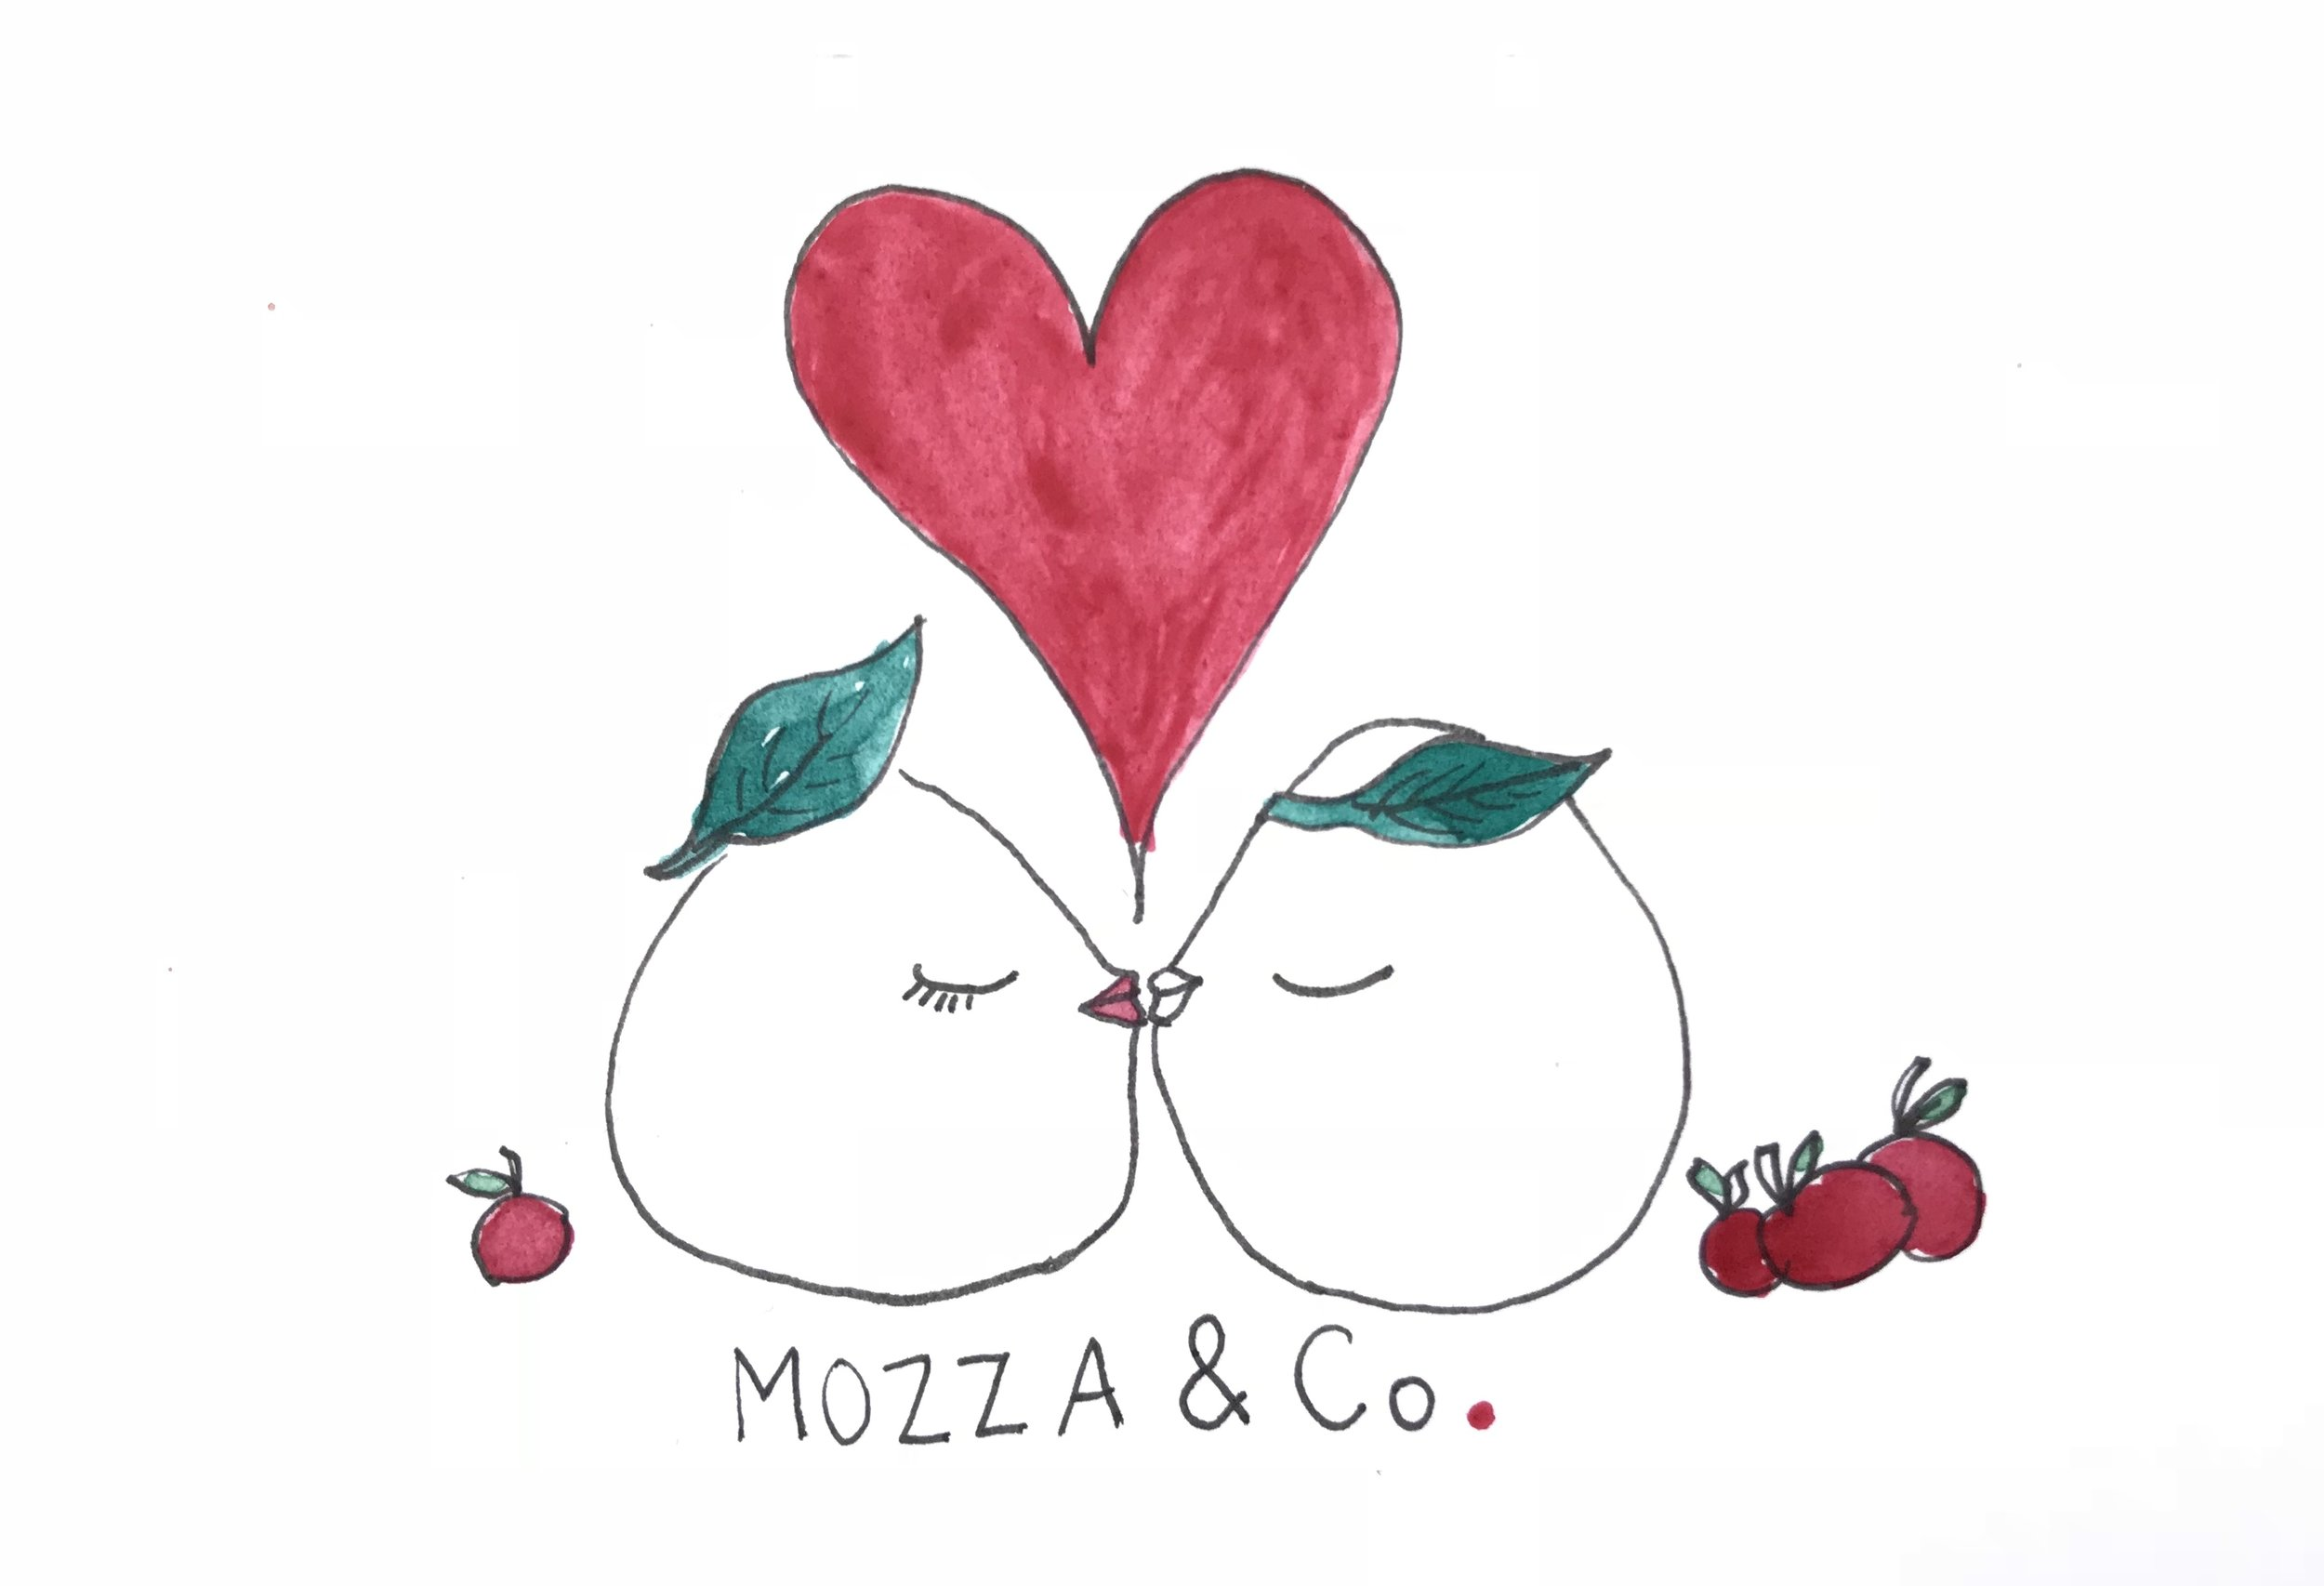 MOzza and co - communication visuelle pour la marque.